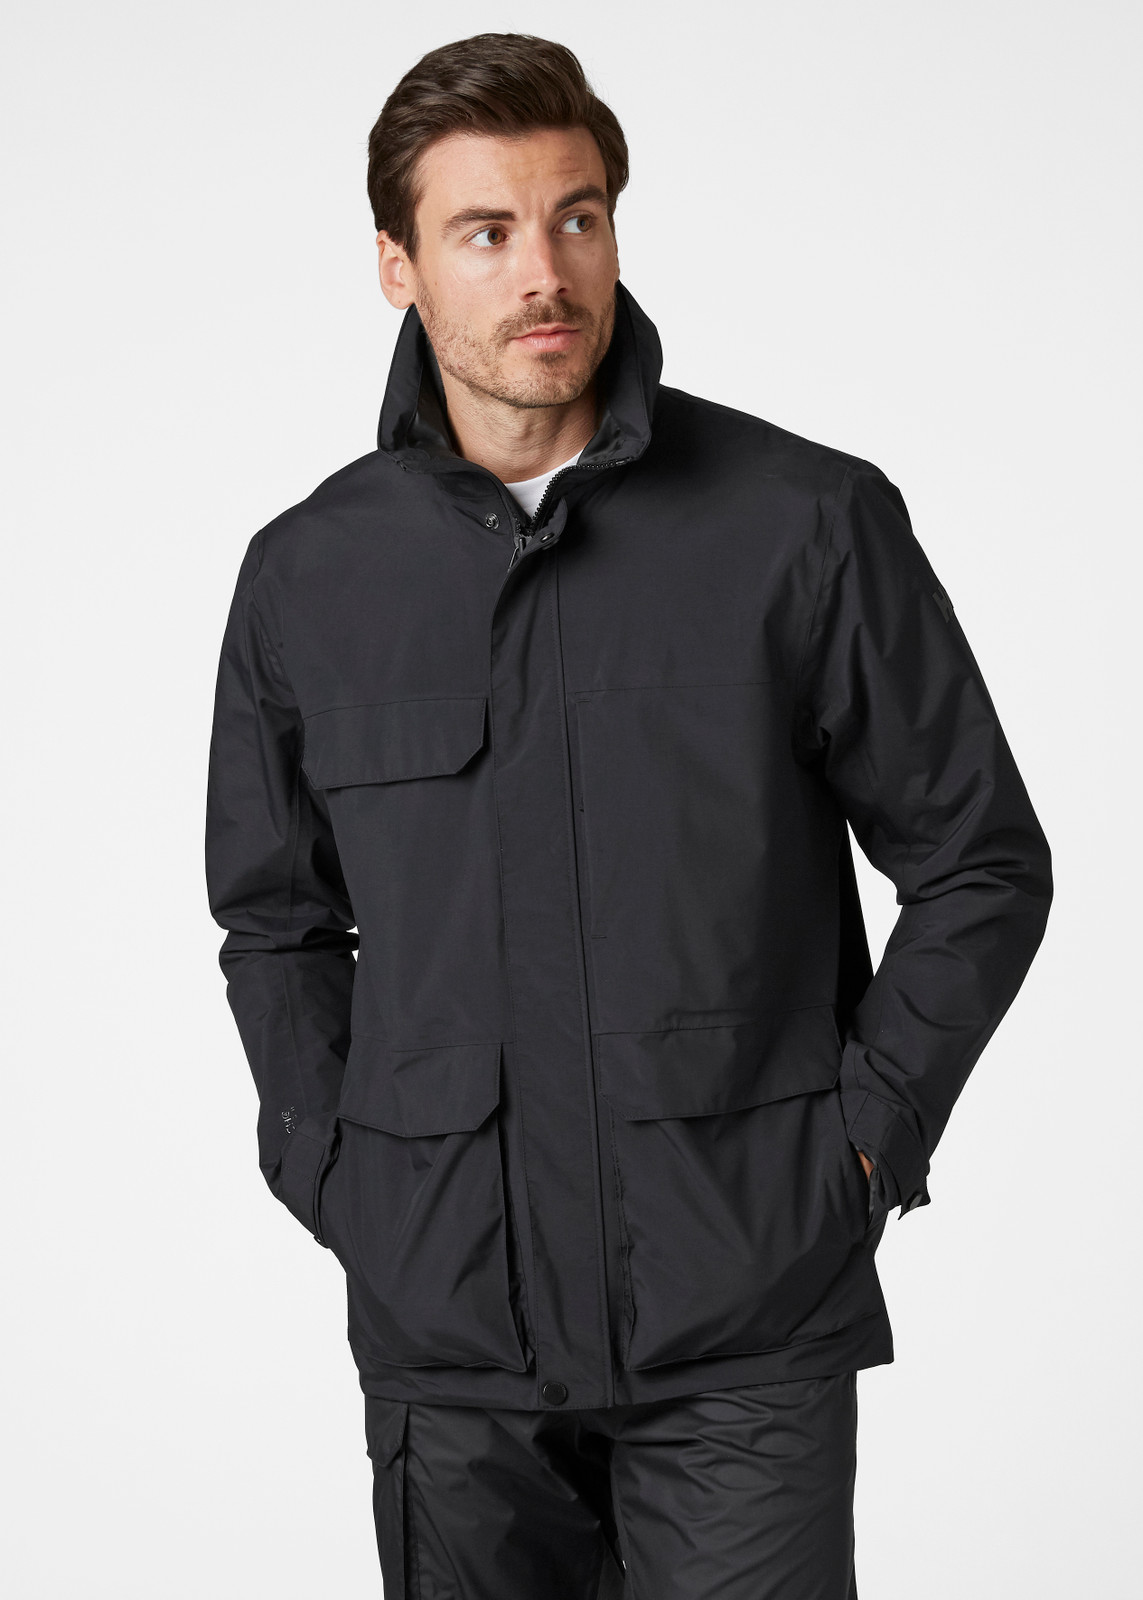 Helly Hansen Utility Rain Jacket, Men's - Black, 53415-990 on model